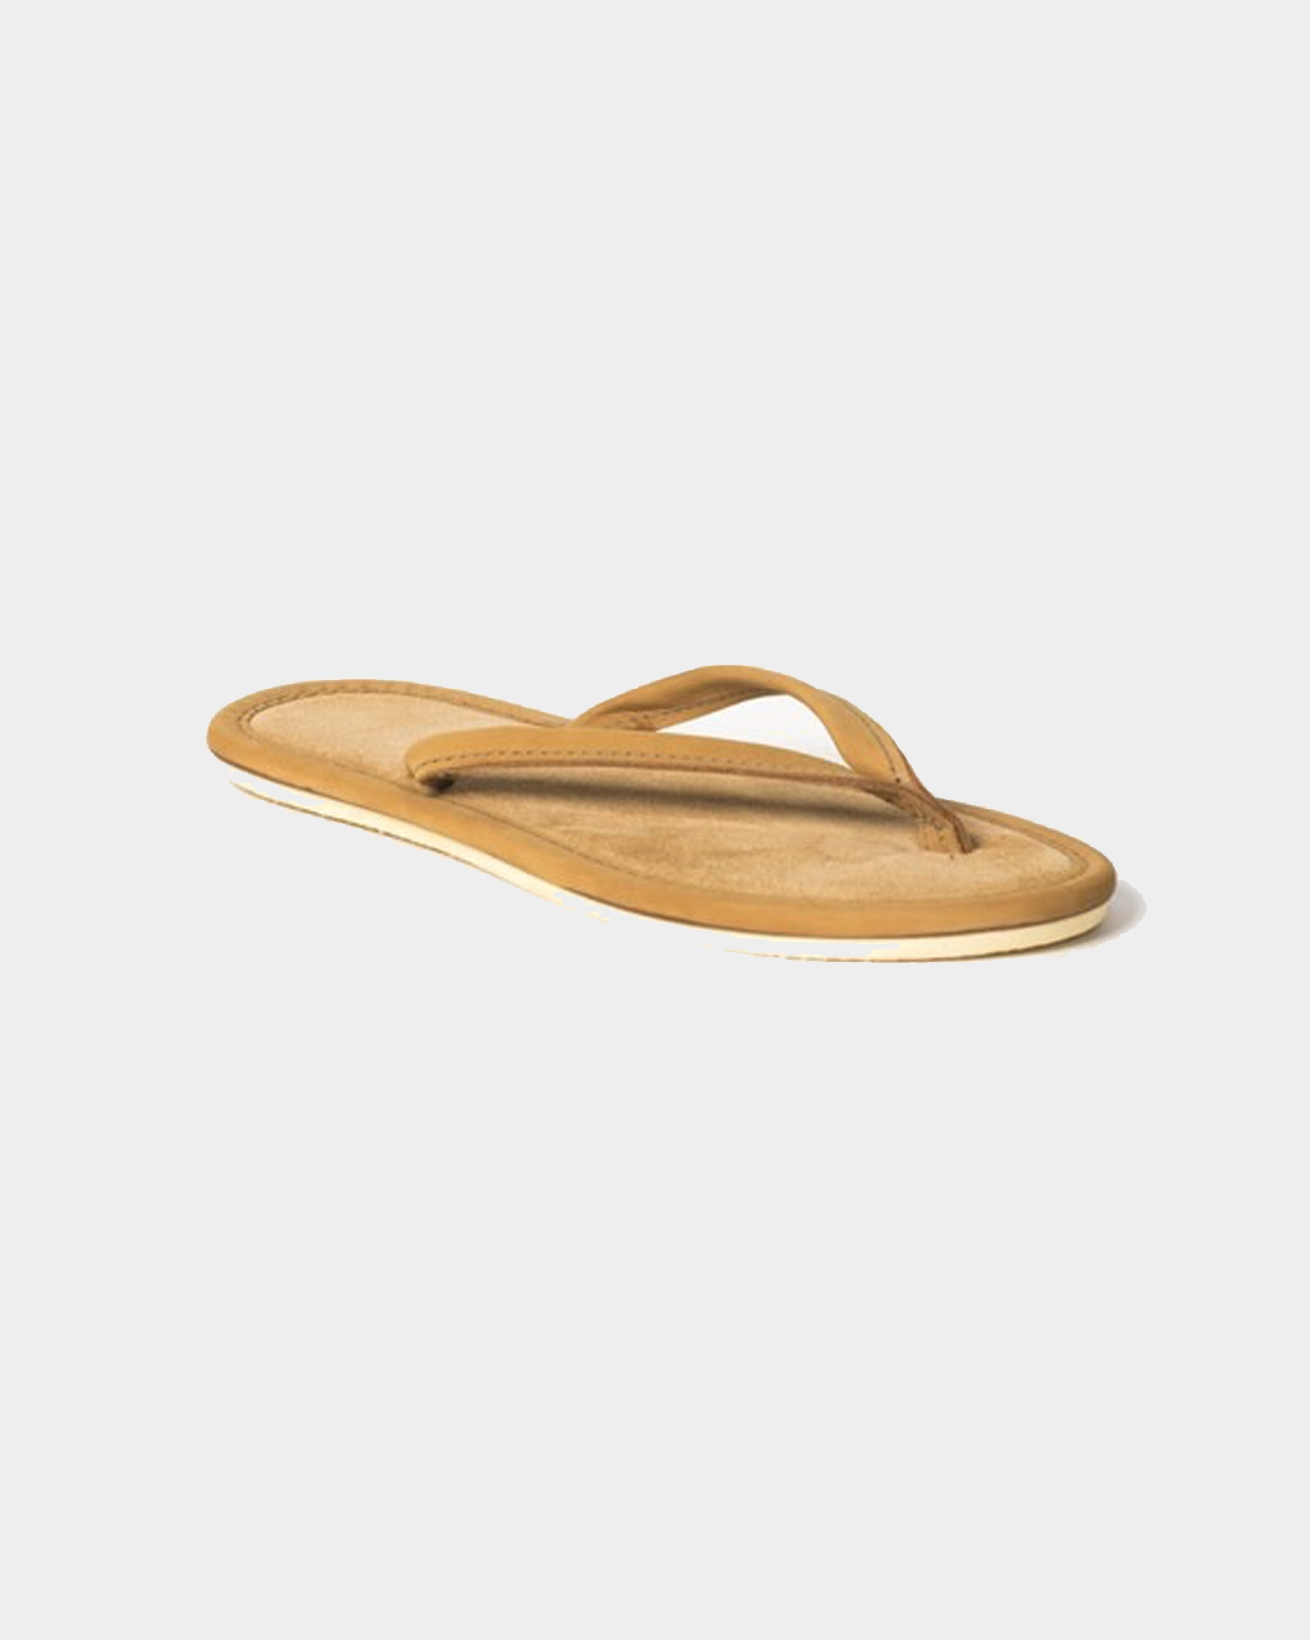 Nubuck and Suede Flip Flop - Size 6 - Tan - 1585